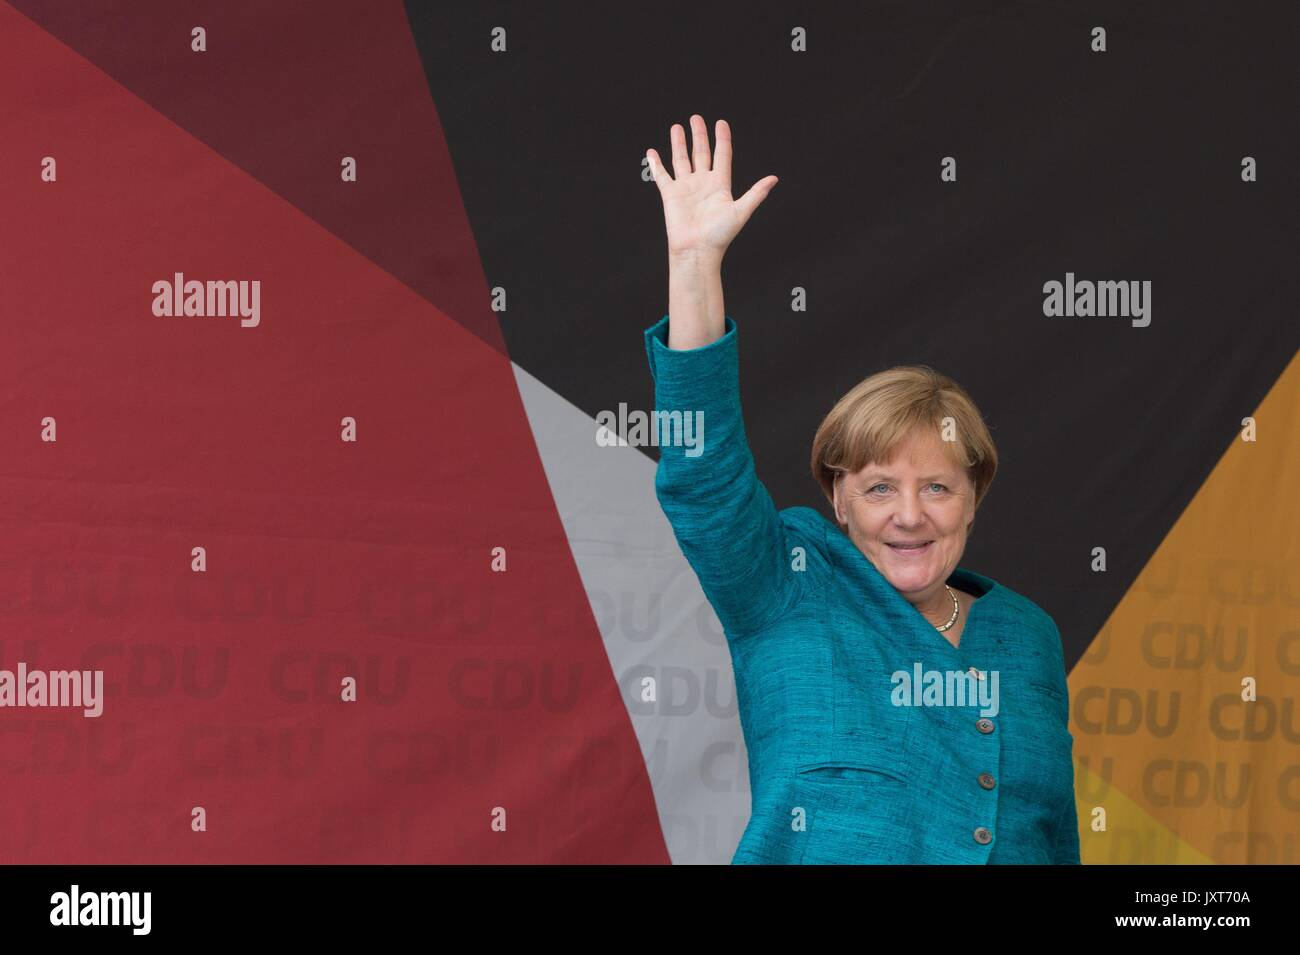 Annaberg-Buchholz, Germany. 17th Aug, 2017. German Chancellor Angela Merkel (CDU) waves from the stage during an election campaign event in Annaberg-Buchholz, Germany, 17 August 2017. Photo: Sebastian Kahnert/dpa-Zentralbild/dpa/Alamy Live News - Stock Image